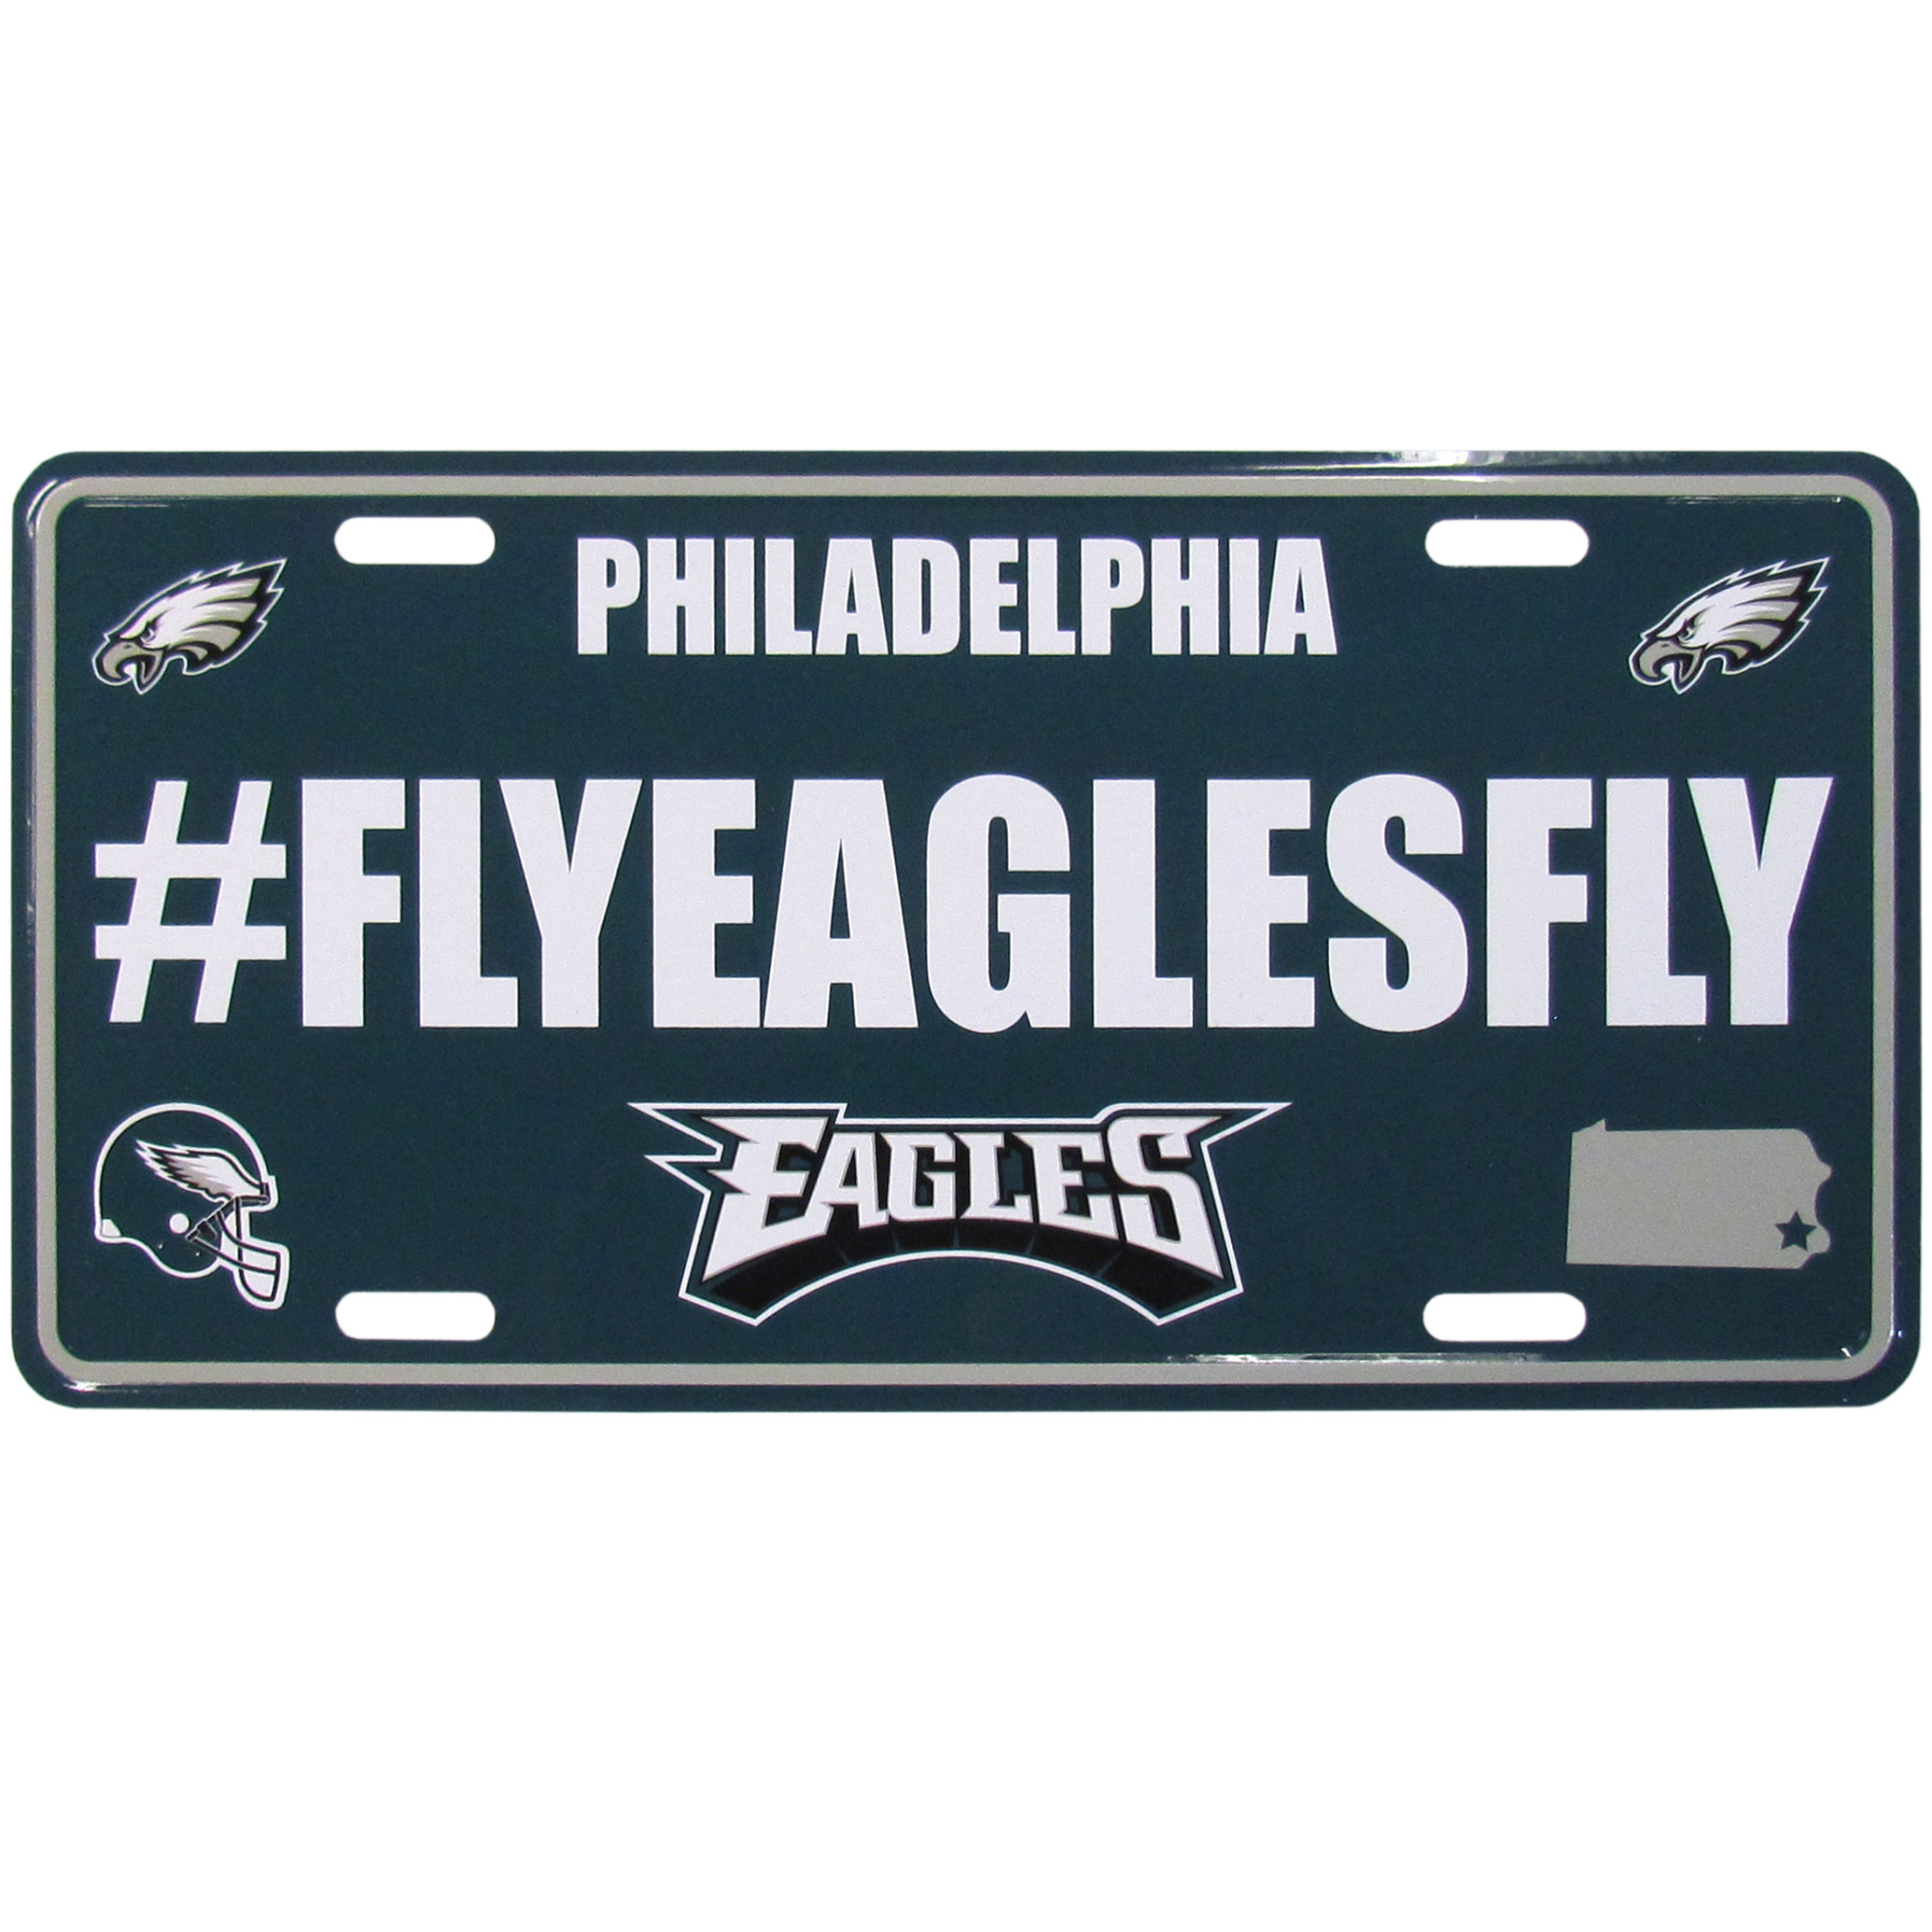 Philadelphia Eagles Hashtag License Plate - It's a hashtag world! Celebrate the Philadelphia Eagles with this stamped aluminum license plate with the most popular team hashtag! This bright license plate will look great on your vehicle or mounted in your fan cave.